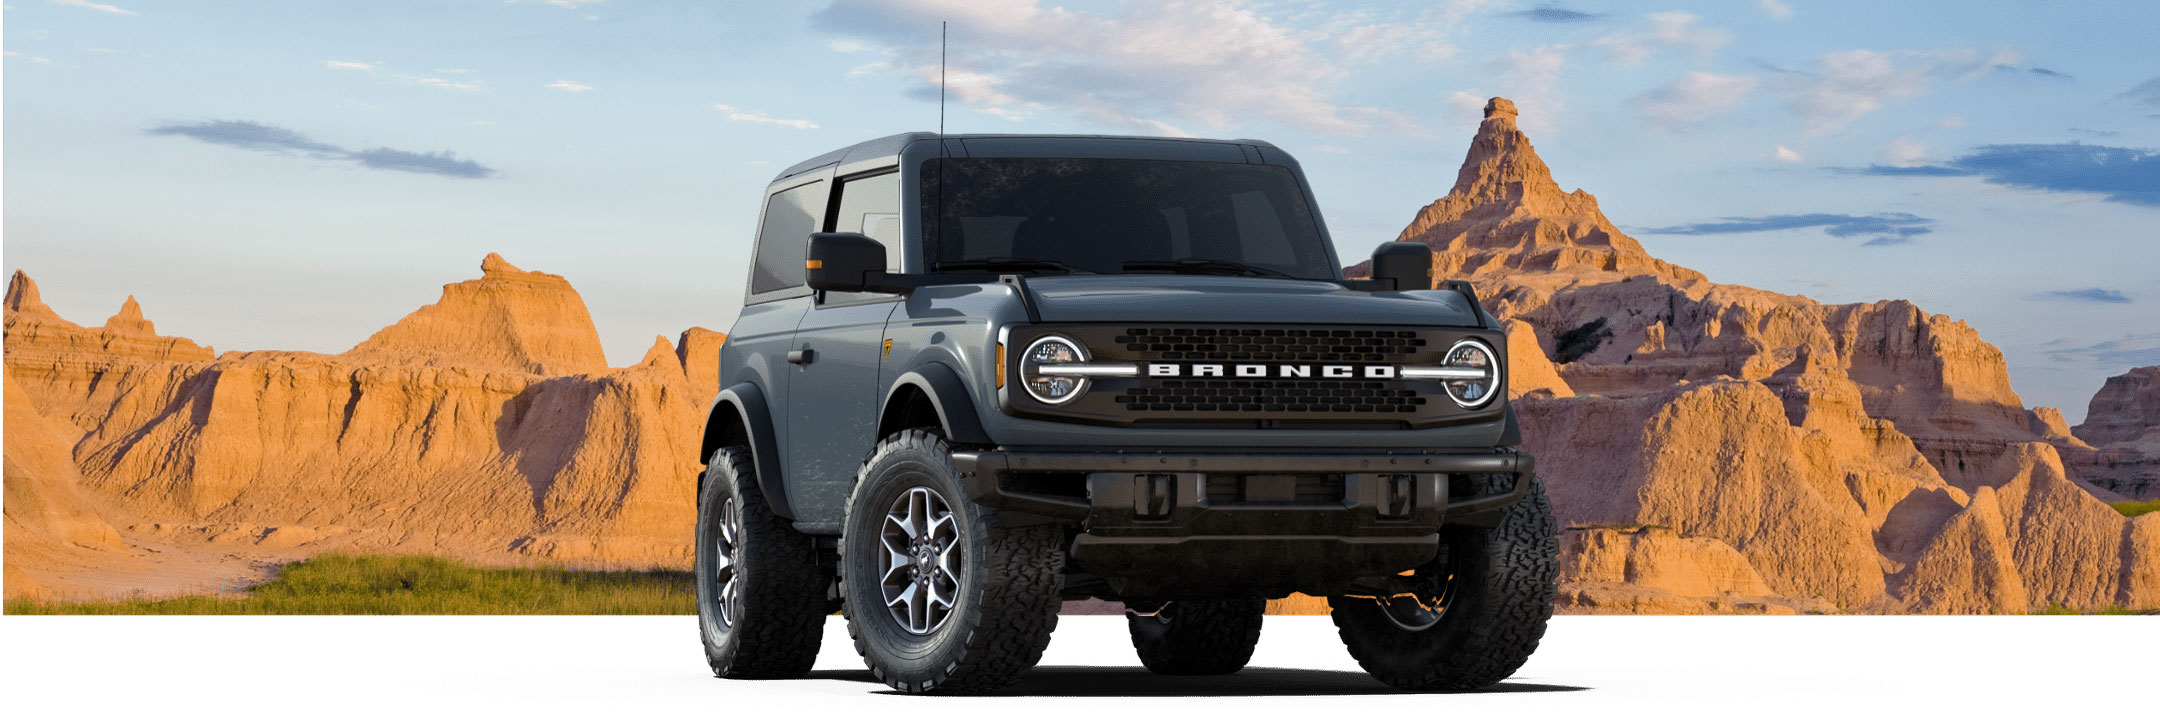 2021 Ford Bronco | Formula Ford Reserve Your Ford Bronco